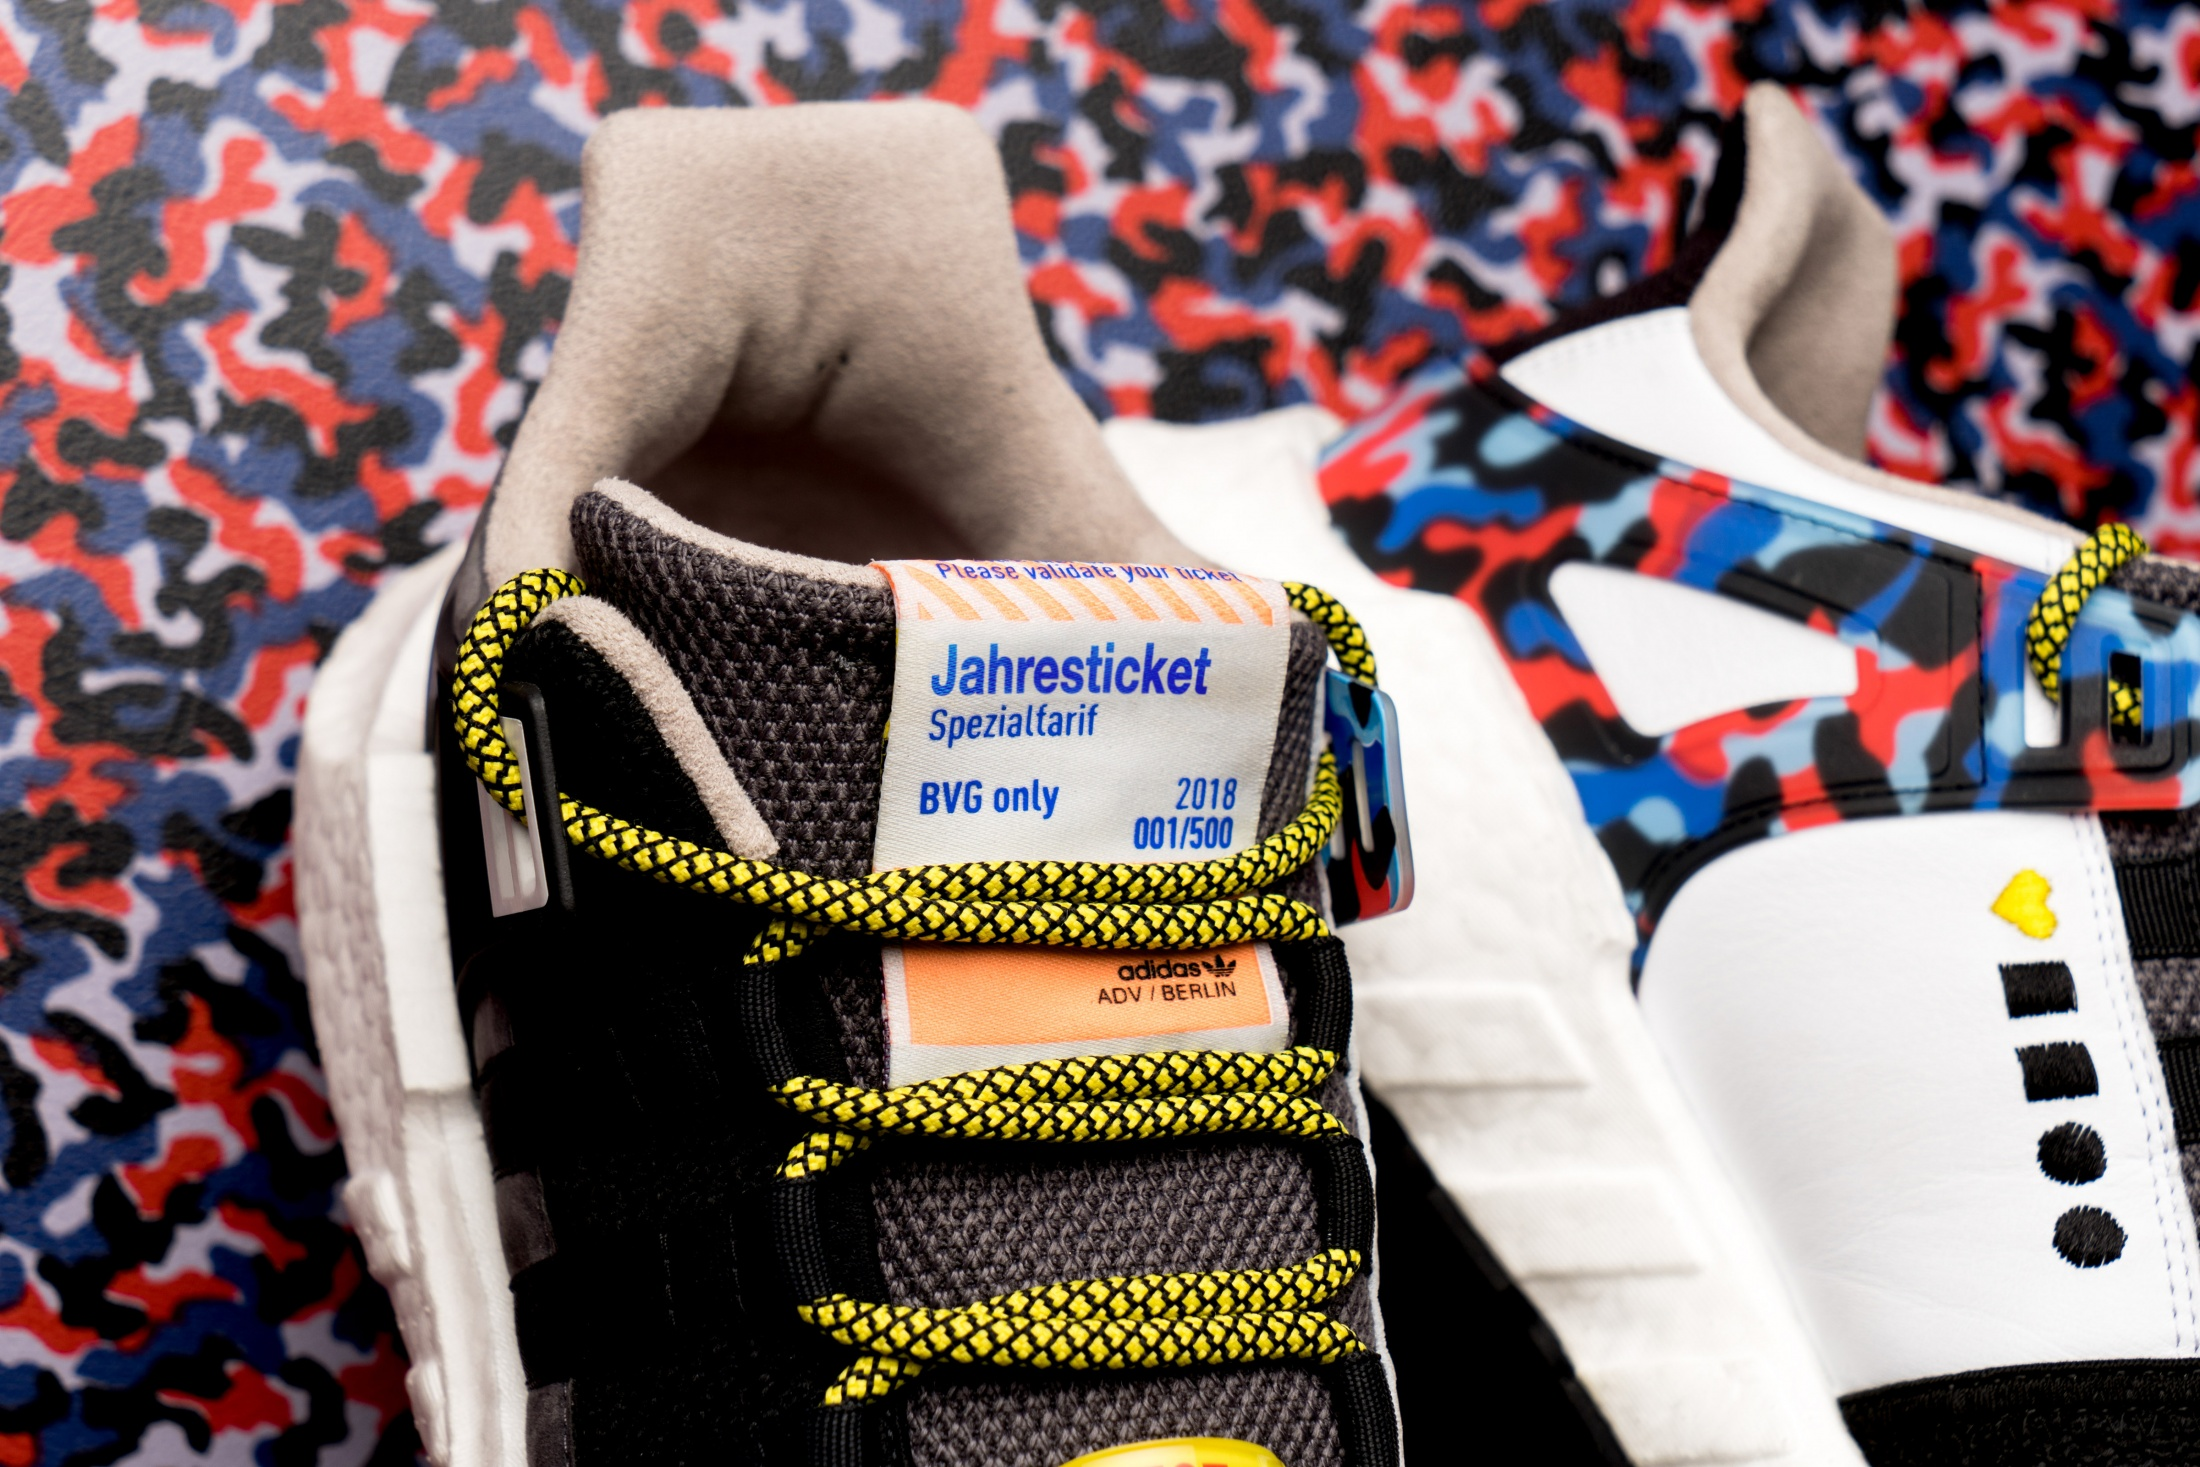 Image Media for BVG x adidas – The ticket-shoe